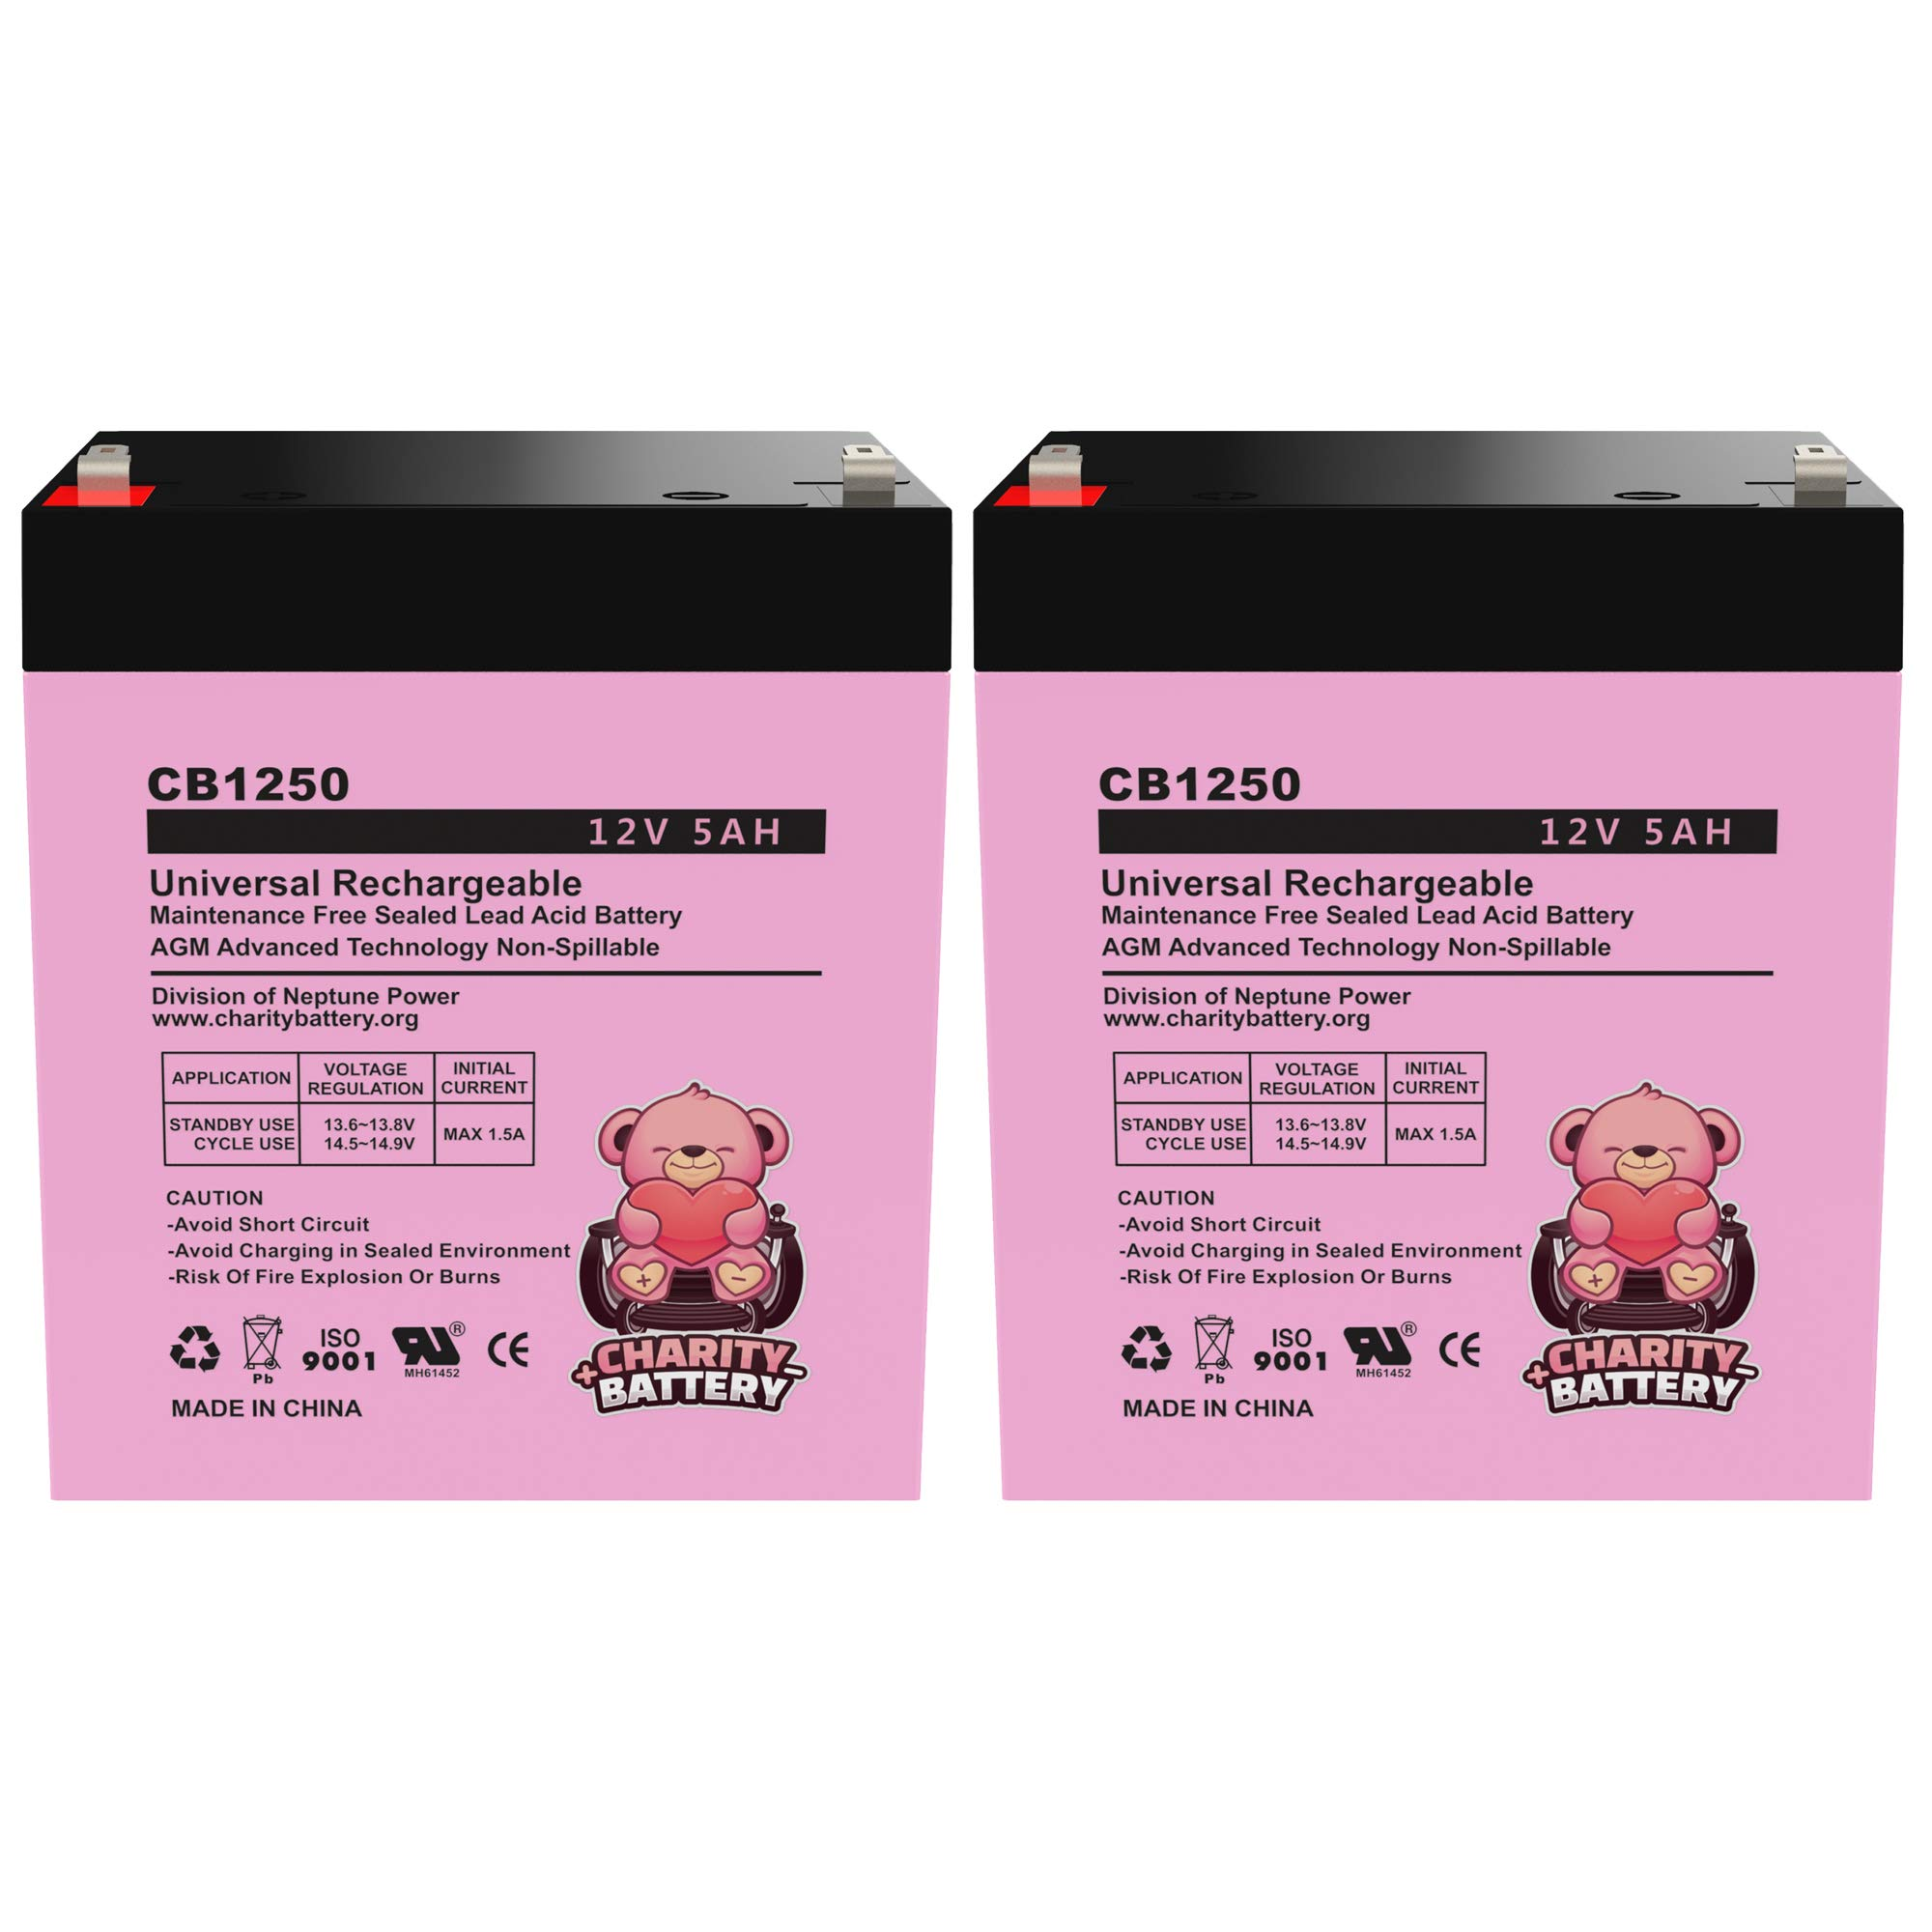 Charity Battery 12V 5Ah CB1250 Rechargeable SLA Sealed Lead Acid Replacement Battery - 2 Pack